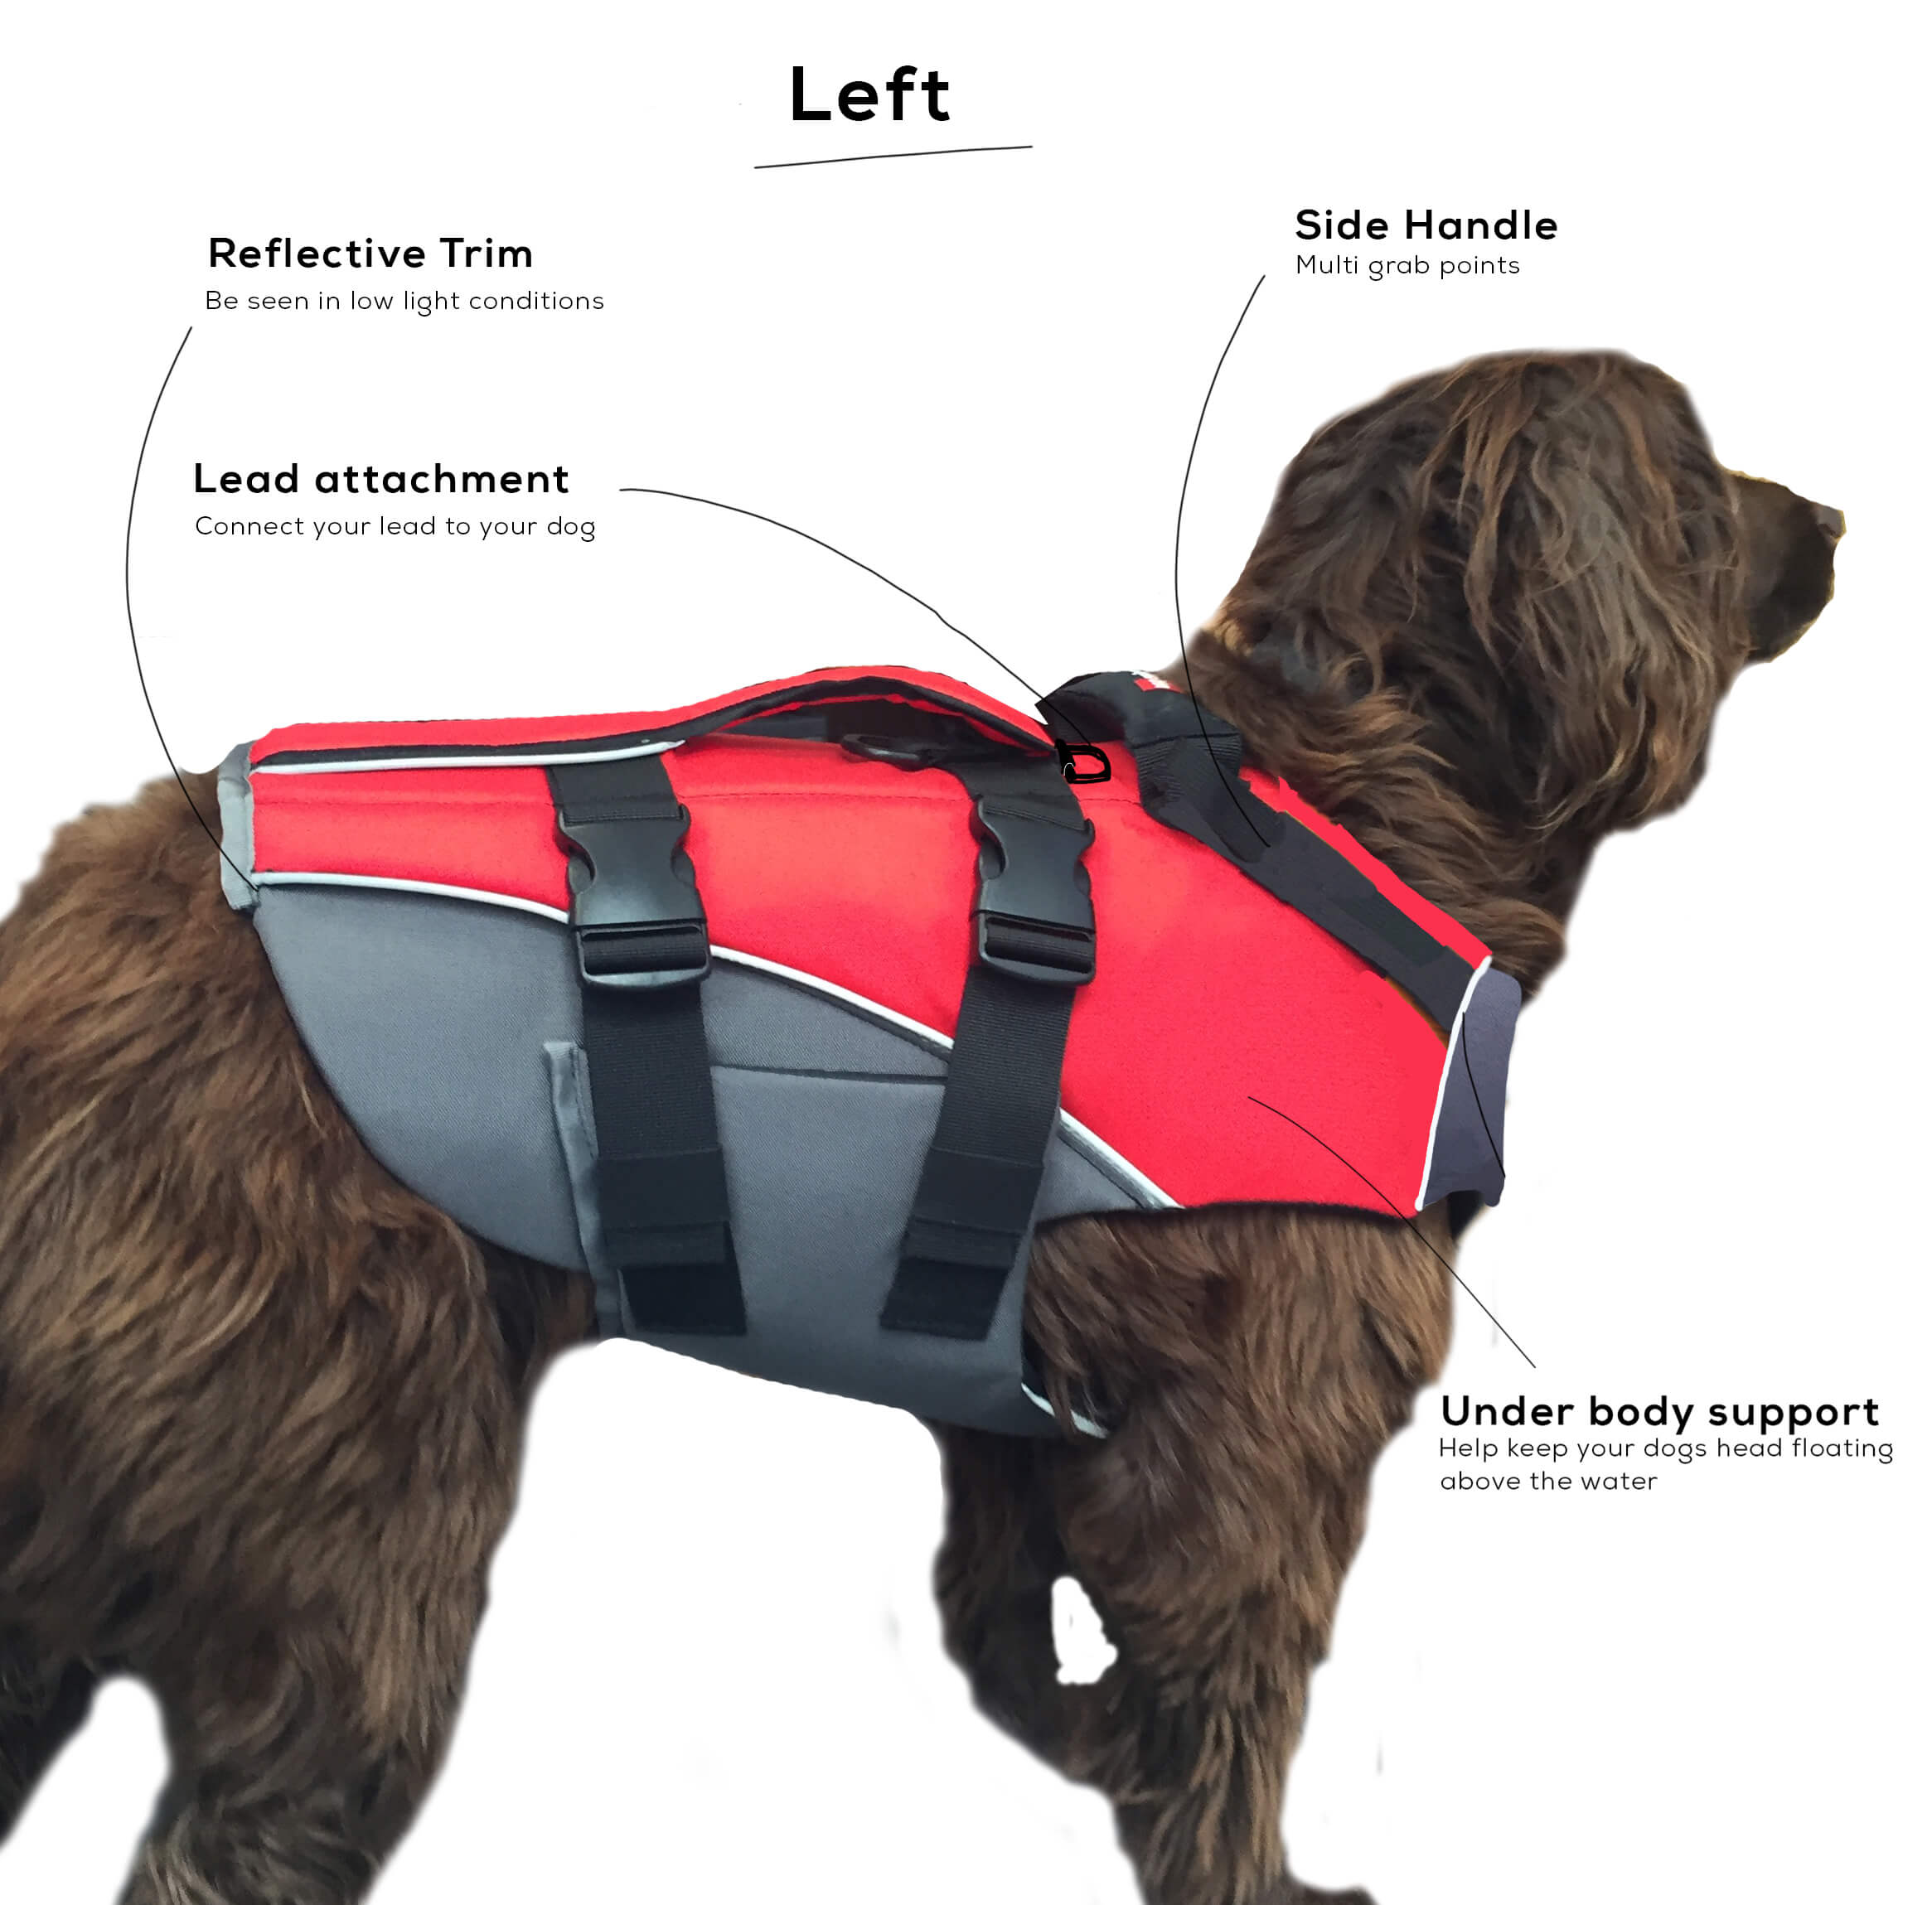 Red Original Dog Buoyancy Aid From The Left